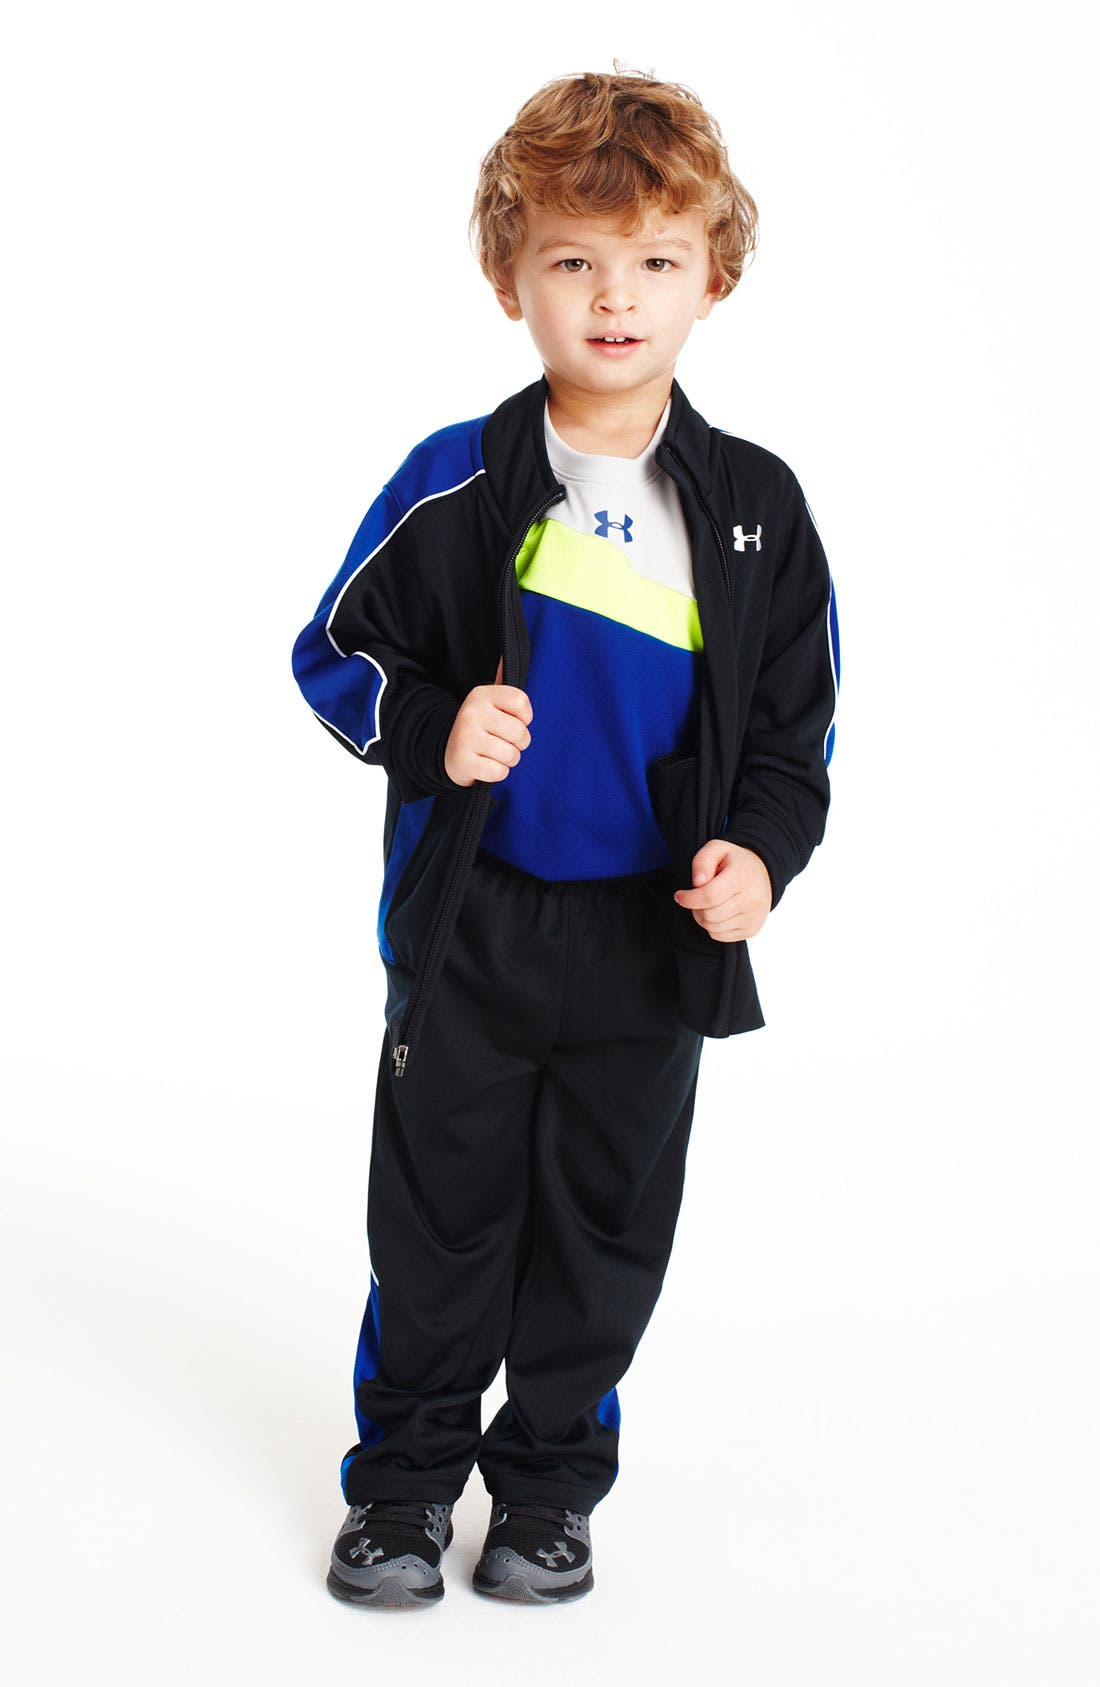 Alternate Image 1 Selected - Under Armour T-Shirt, Jacket, Pants & Sneaker (Toddler)